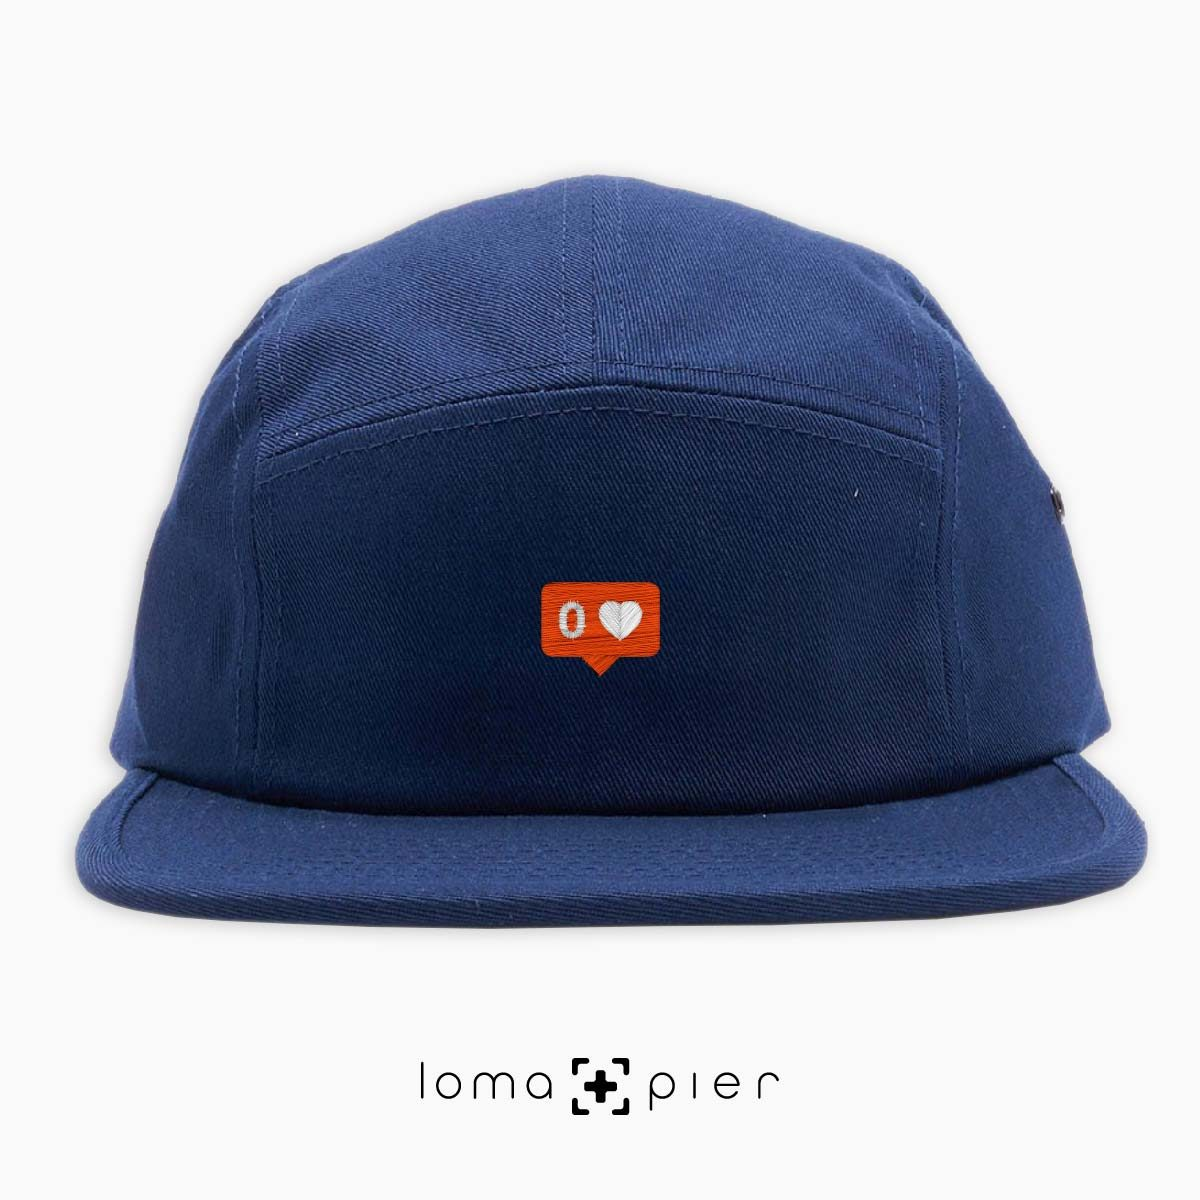 NO LOVE icon 5-panel hat in navy blue by loma+pier hat store